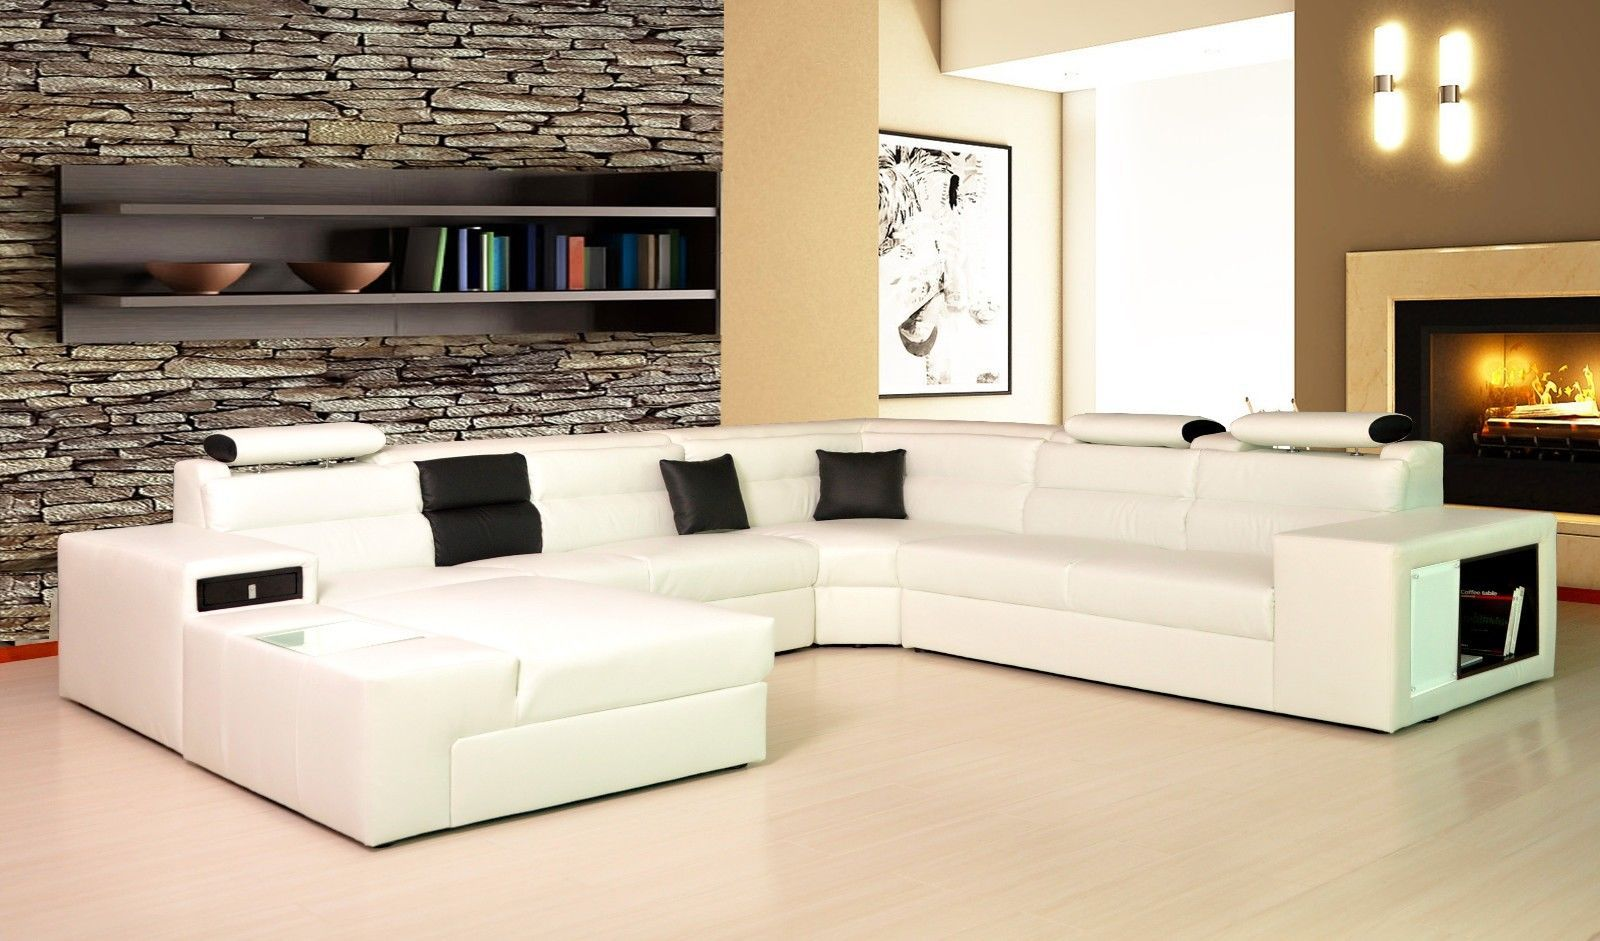 Cynthia Leather Corner Sofa Left Hand Chaise White Black Ebay Living Room Leather Leather Living Room Furniture Leather Corner Sofa